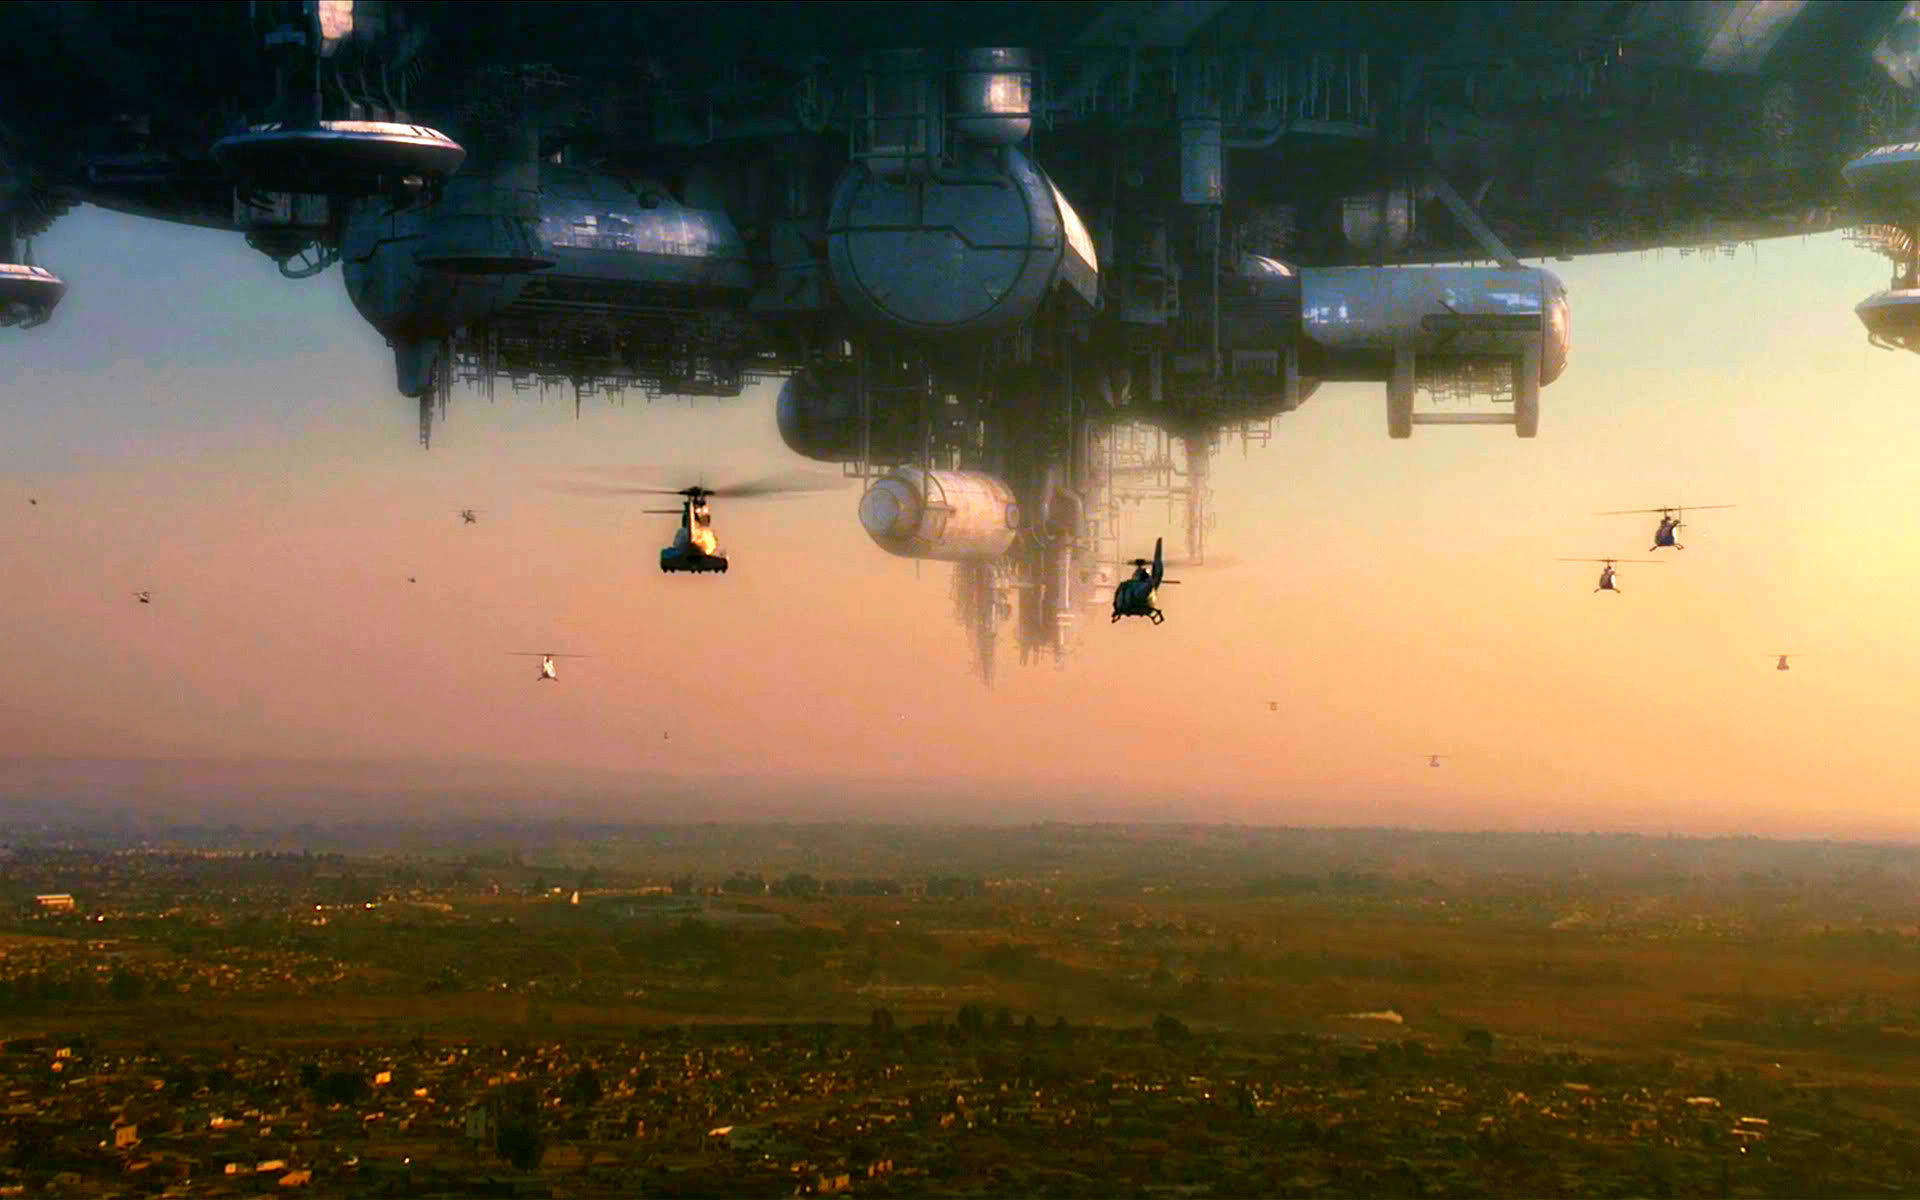 district 9 computer wallpapers - photo #16